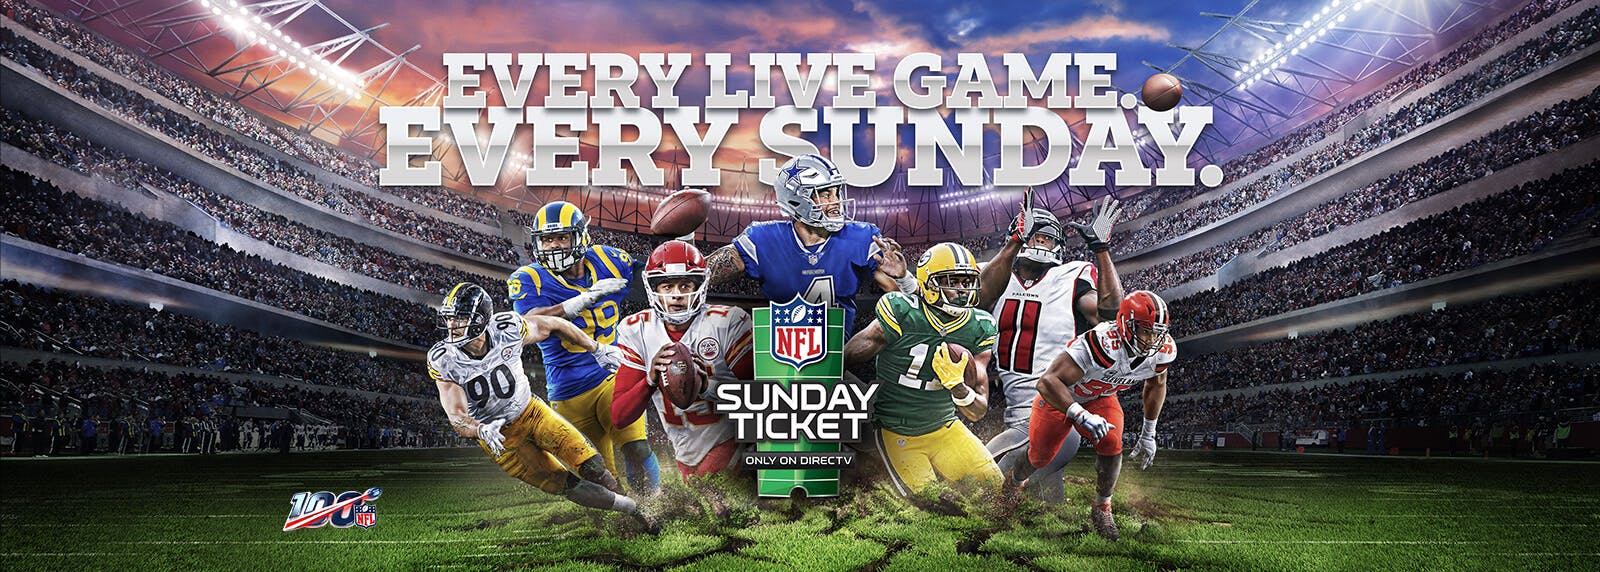 raiders texans nfl sunday ticket streaming afc